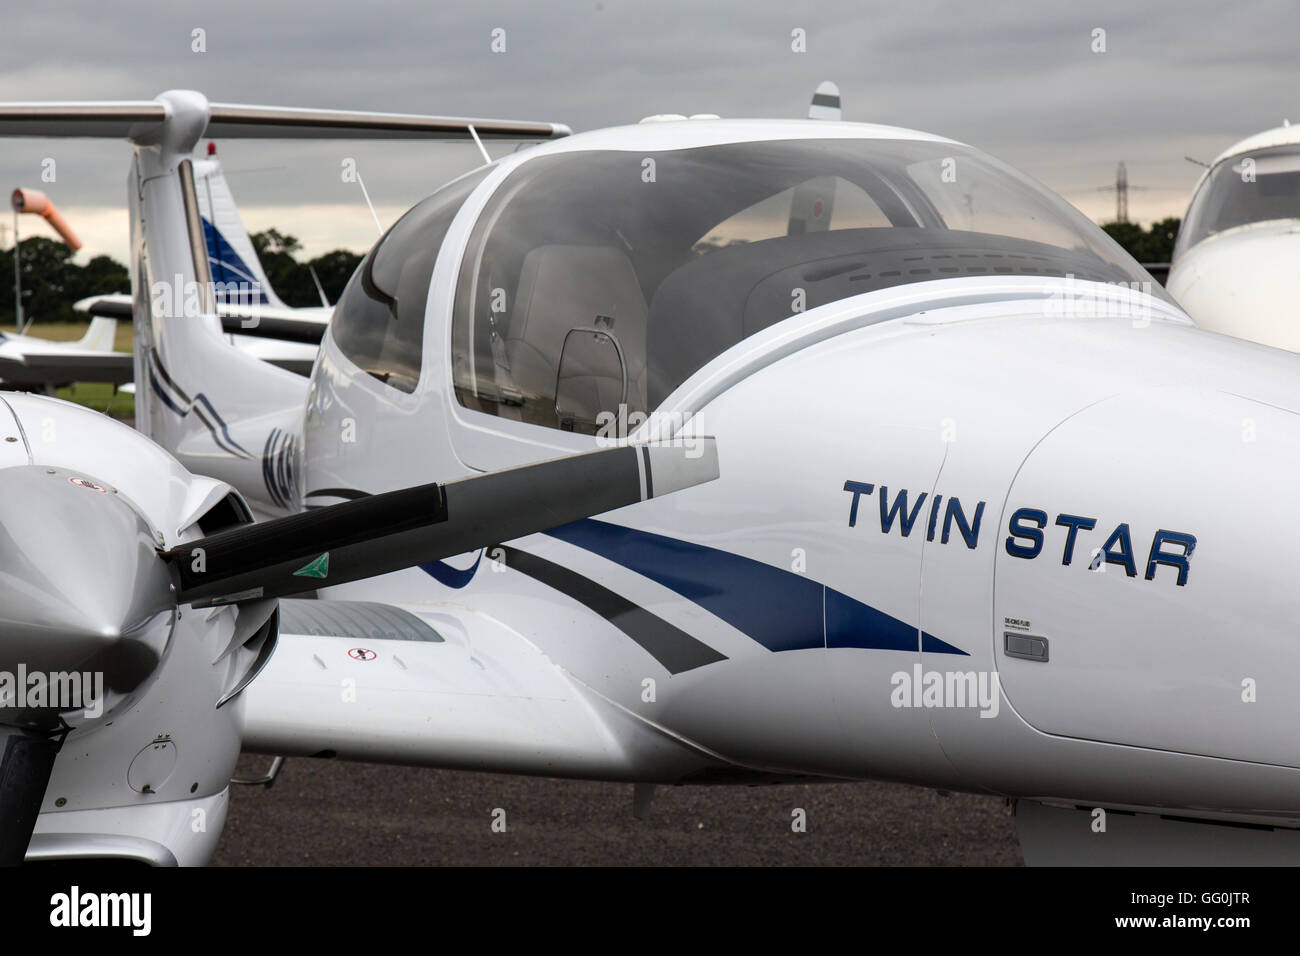 A Diamond DA42 Twin Star, a four seat, twin engine, propeller-driven airplane manufactured by Diamond Aircraft Industries. - Stock Image